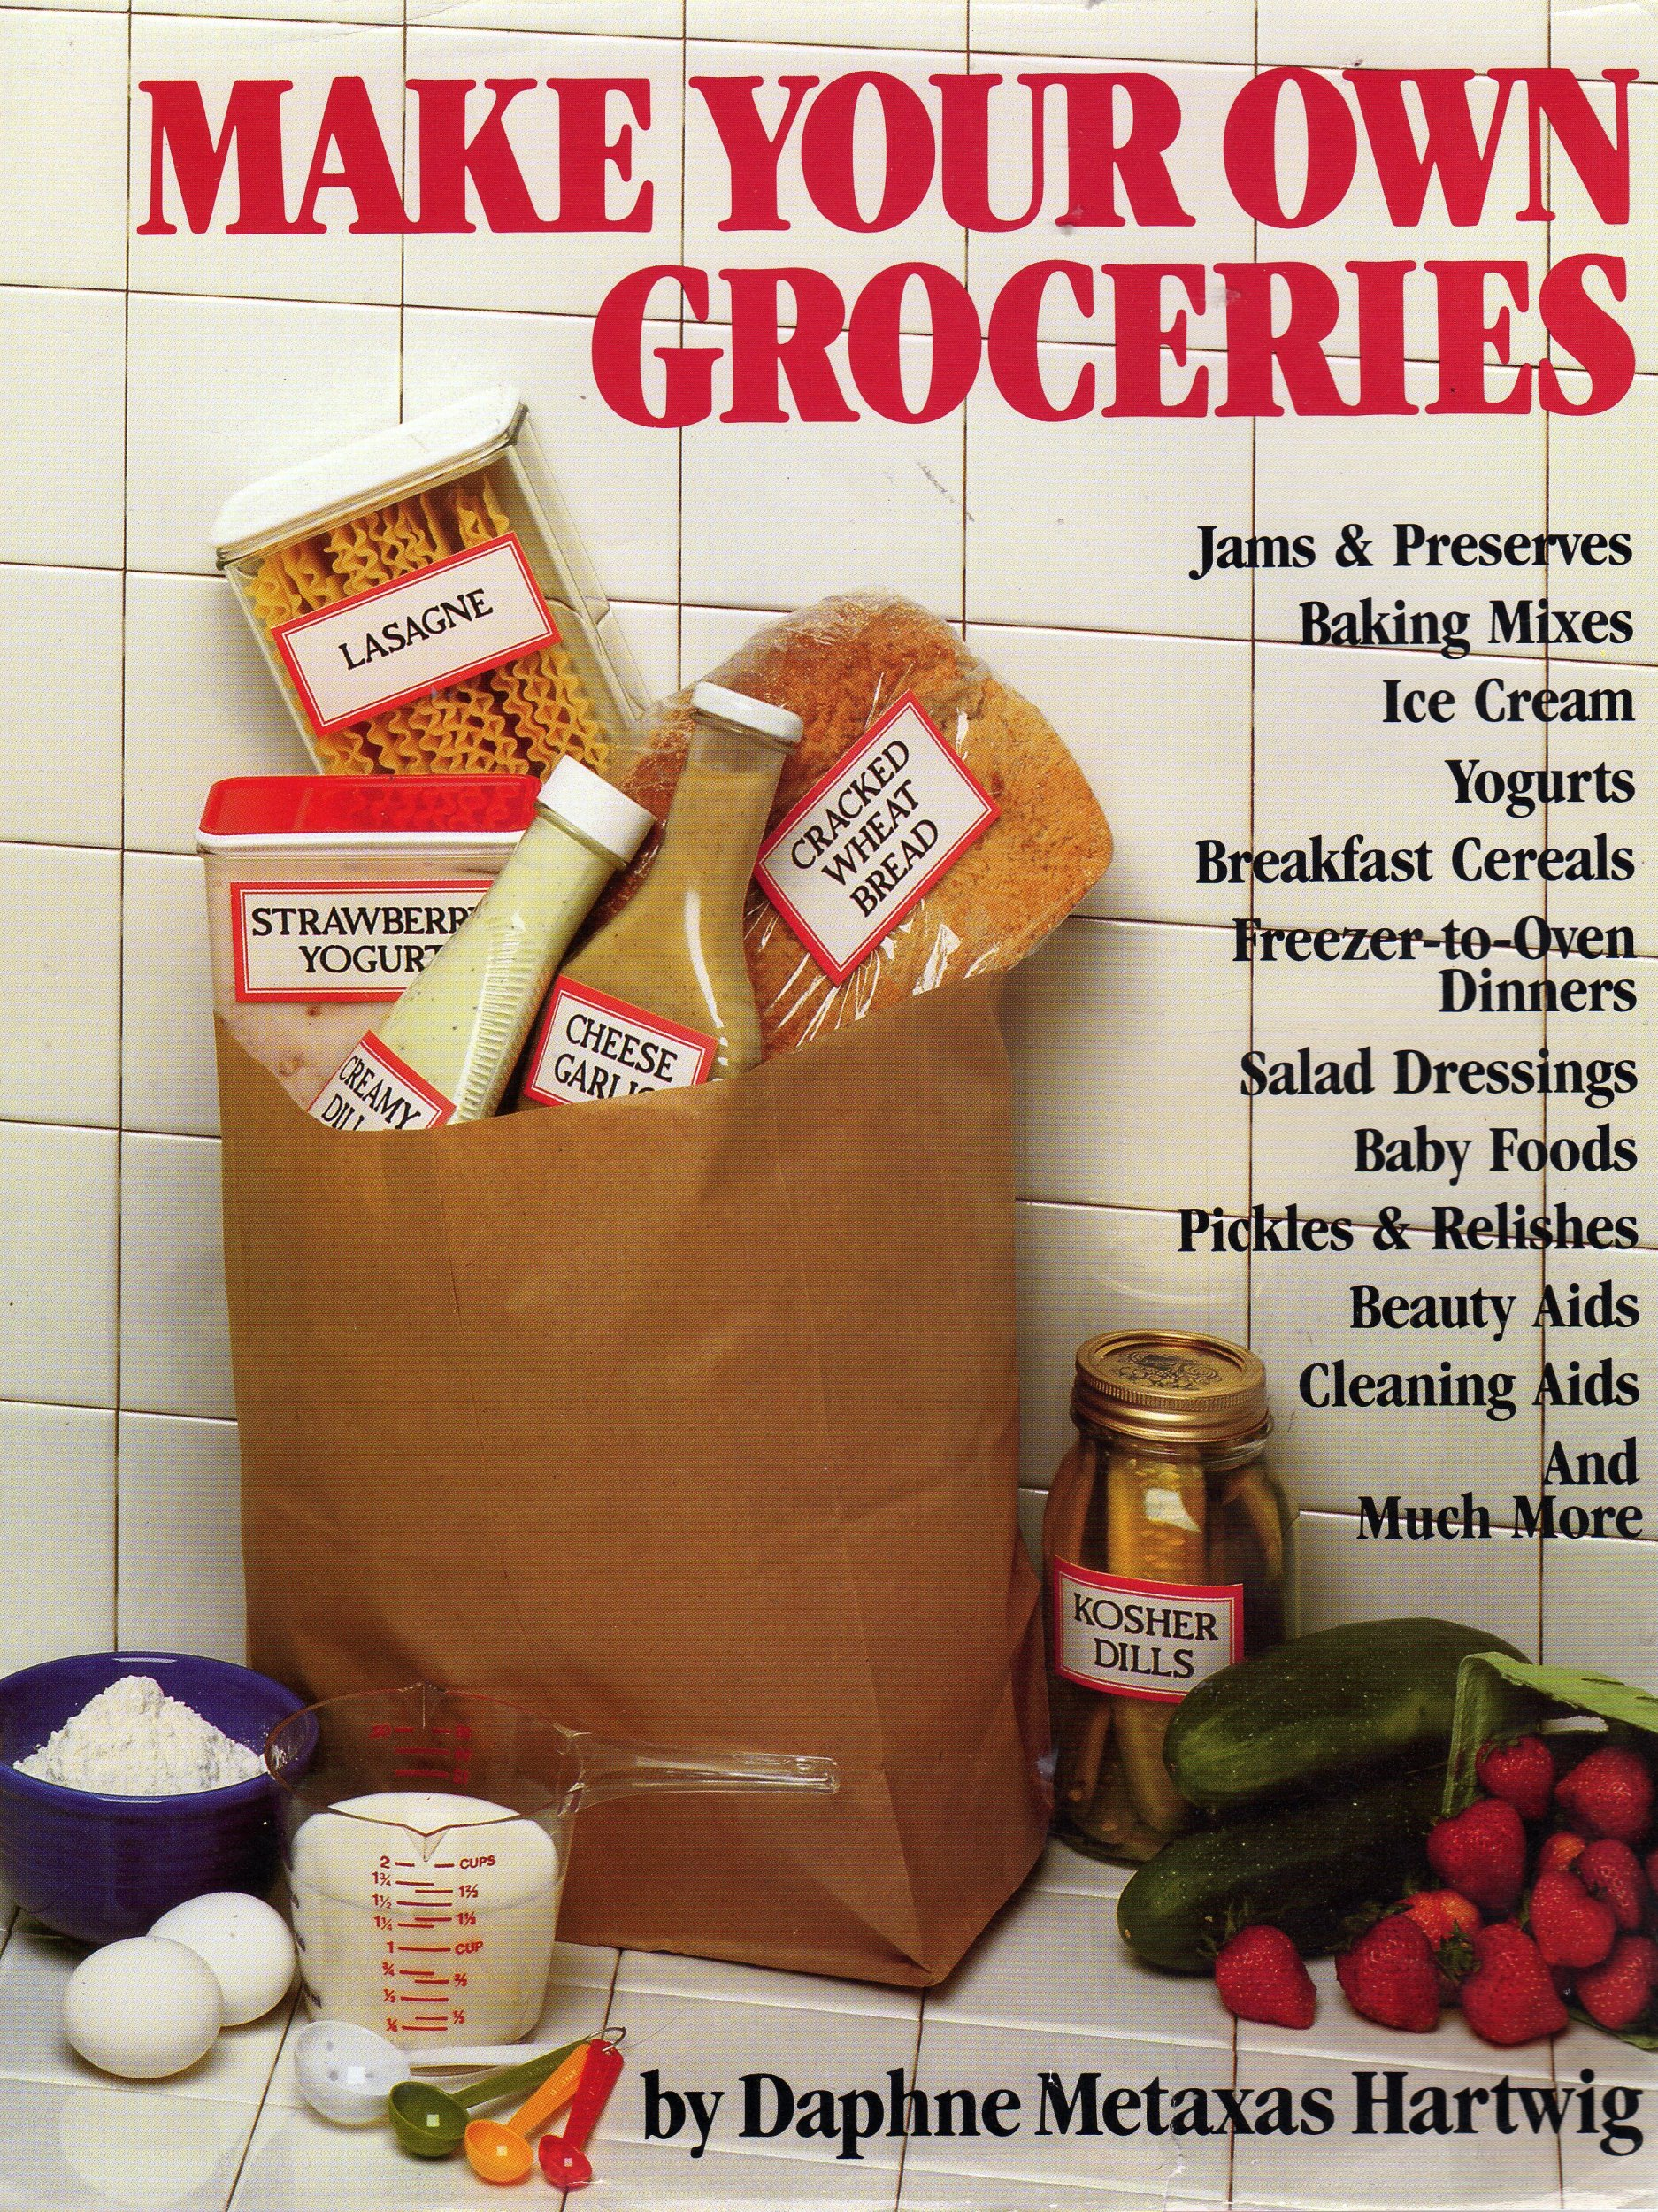 More Make Your Own Groceries, Daphne Metaxas Hartwig